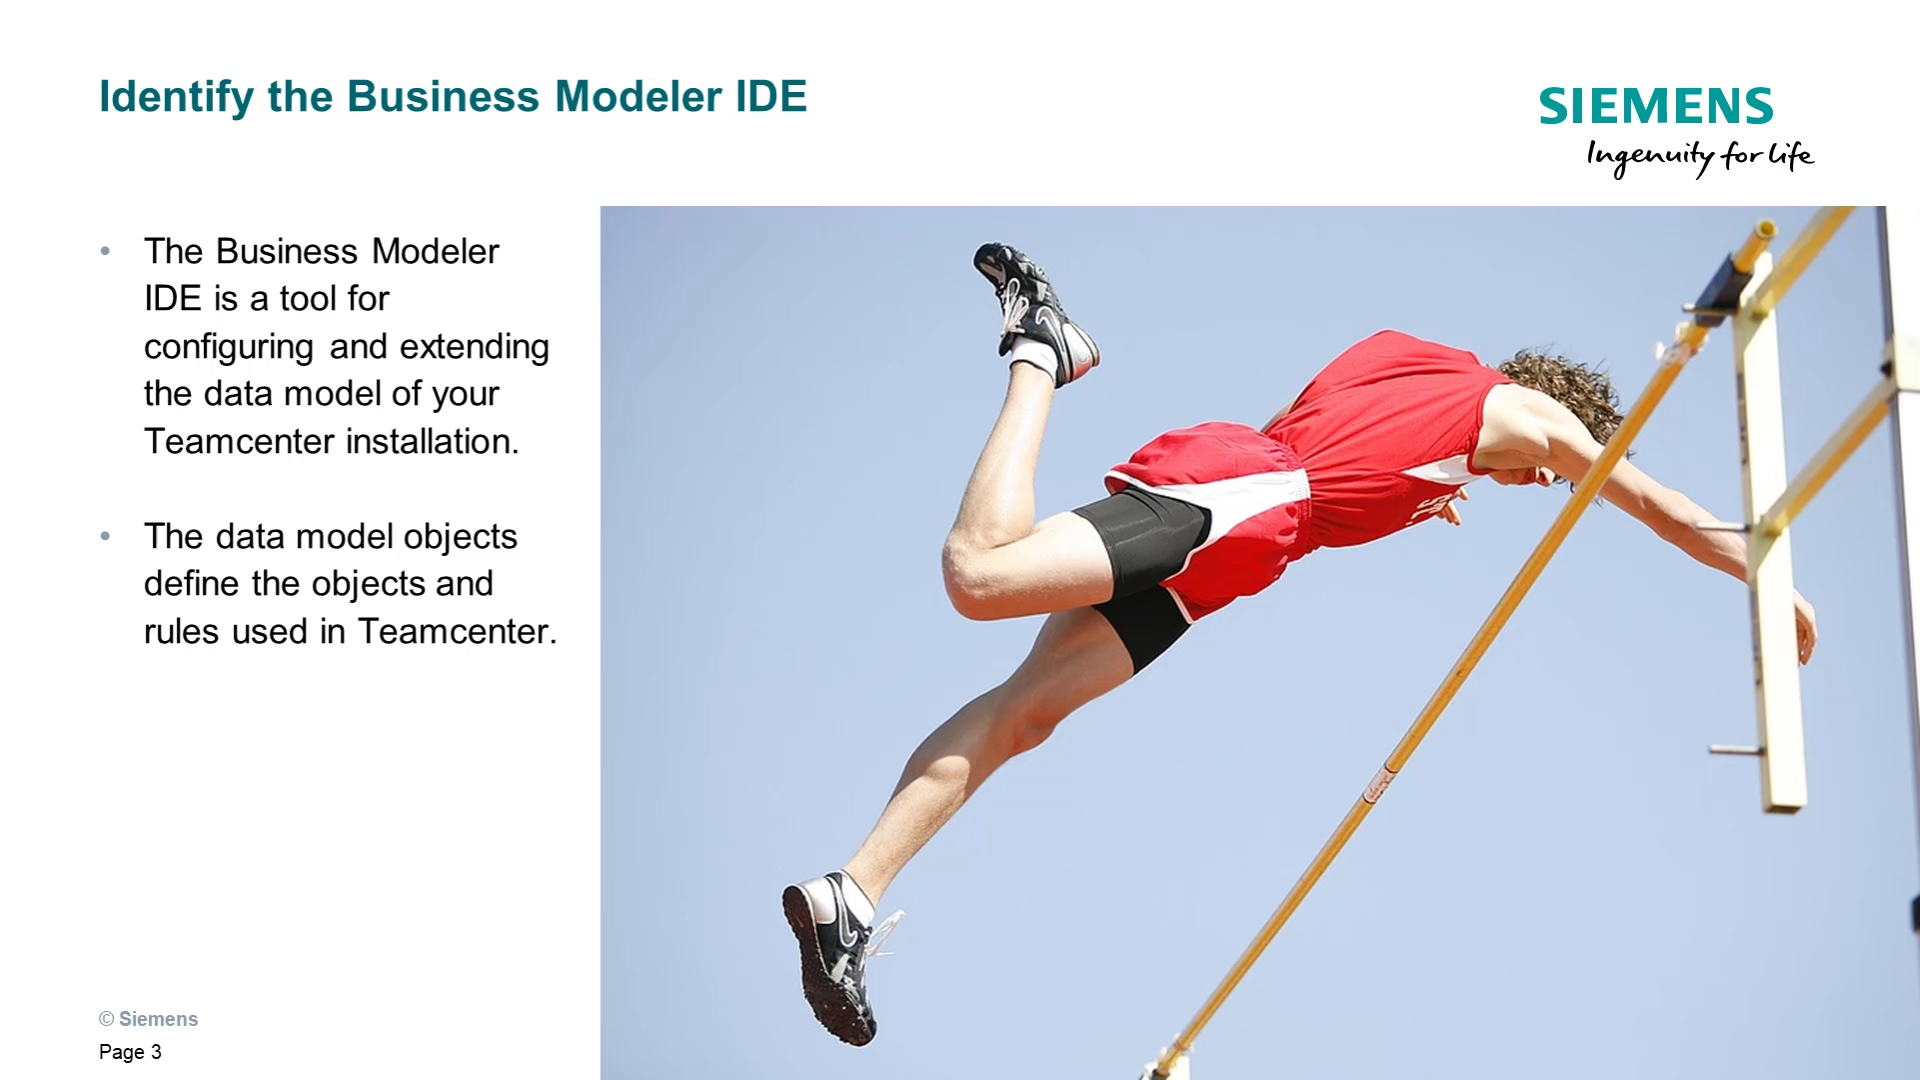 Install the Business Modeler IDE as a stand-alone application cover image